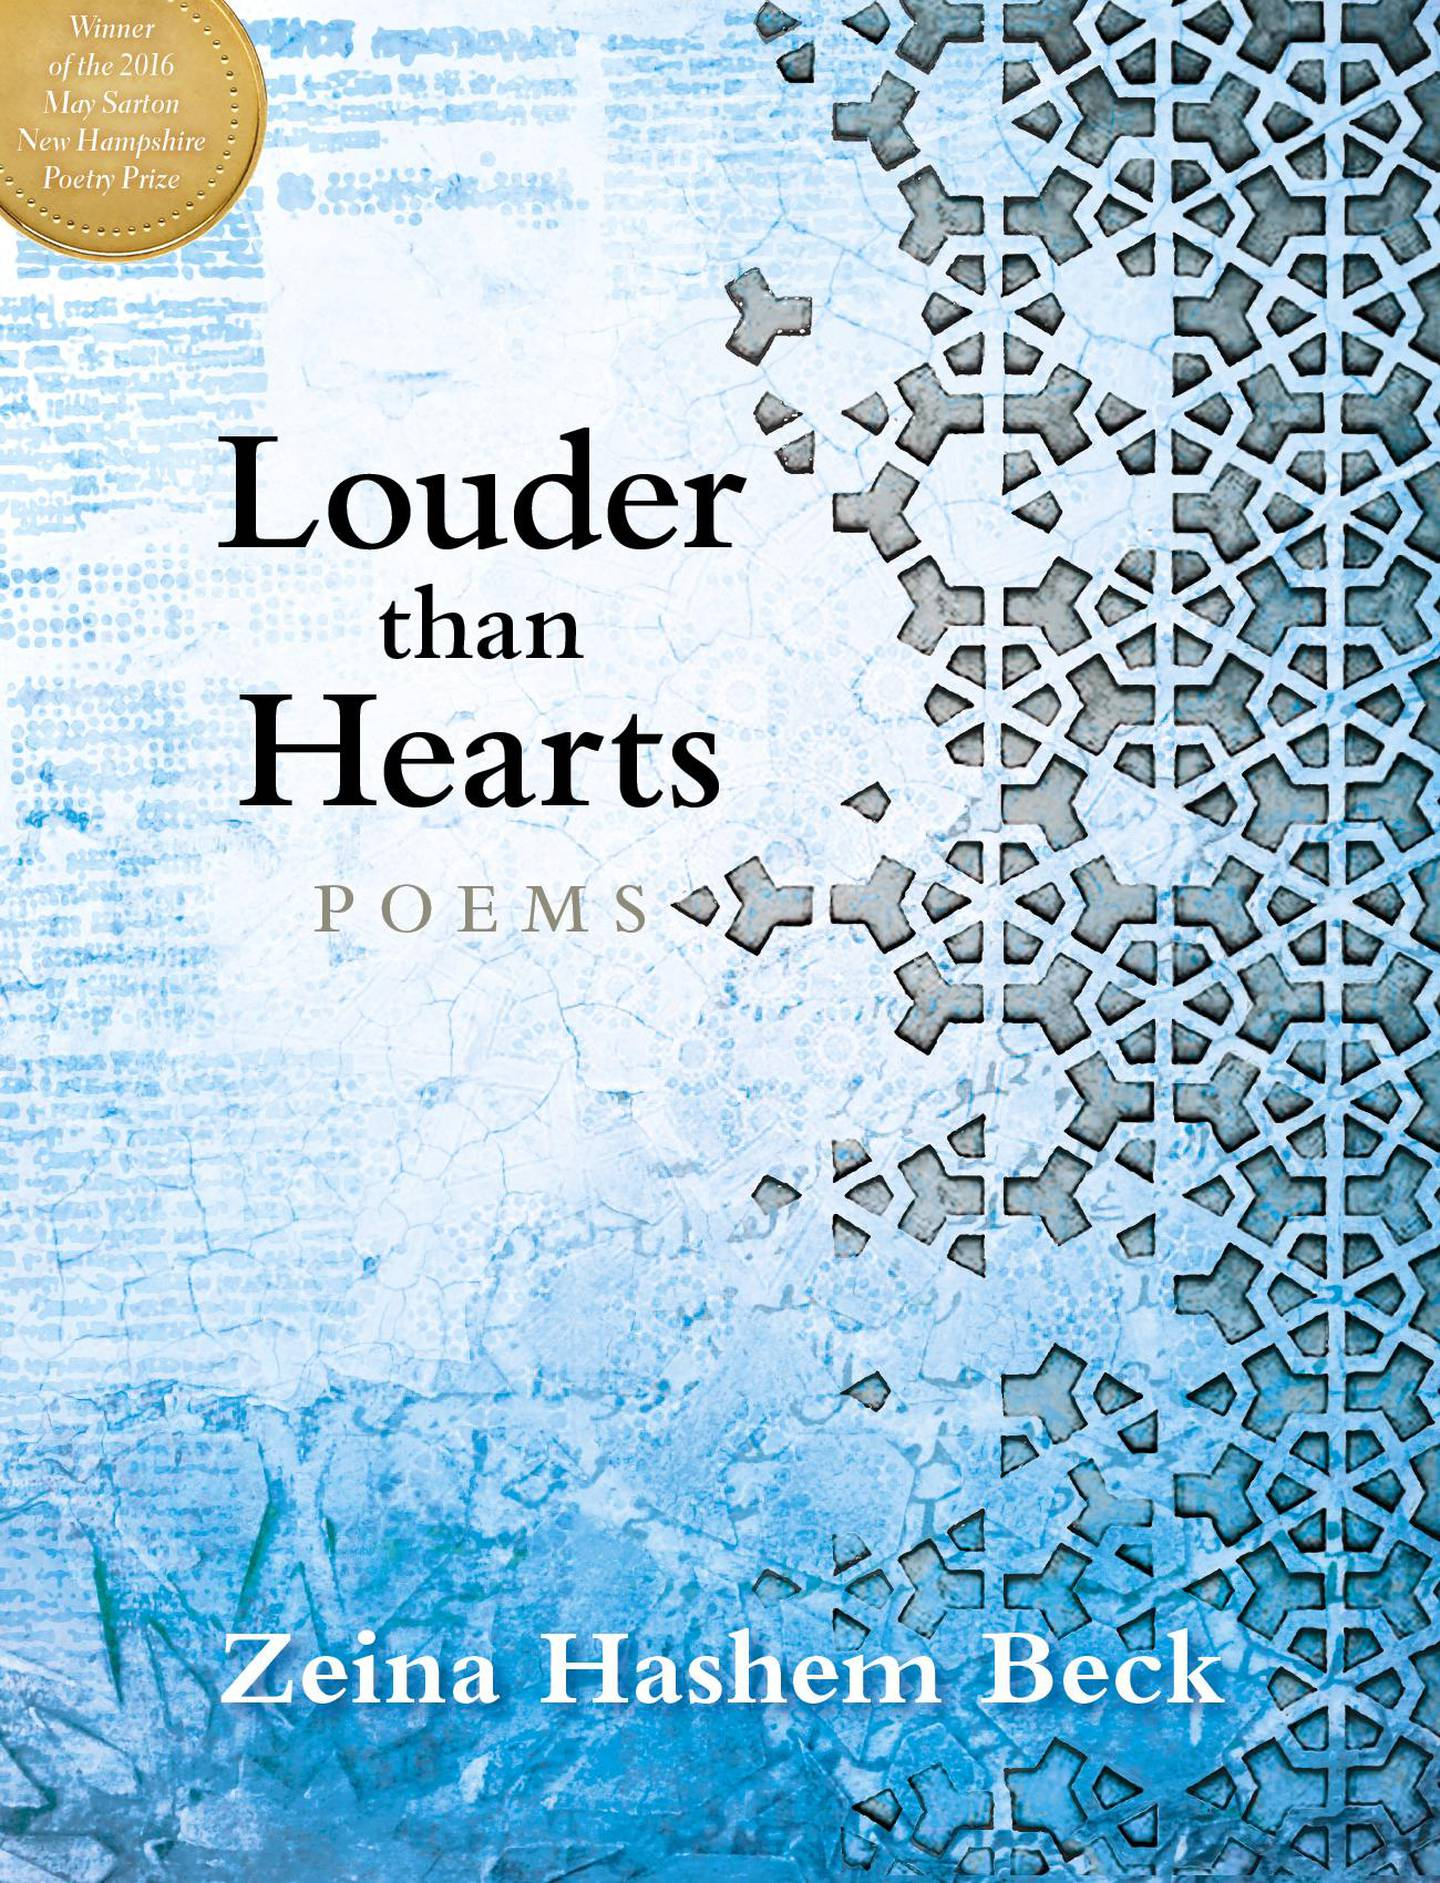 A handout book cover image of Louder than Hearts by Zeina Hashem Beck (Courtesy: Bauhan Publishing) *** Local Caption ***  rv10ju-books-beck02.jpg